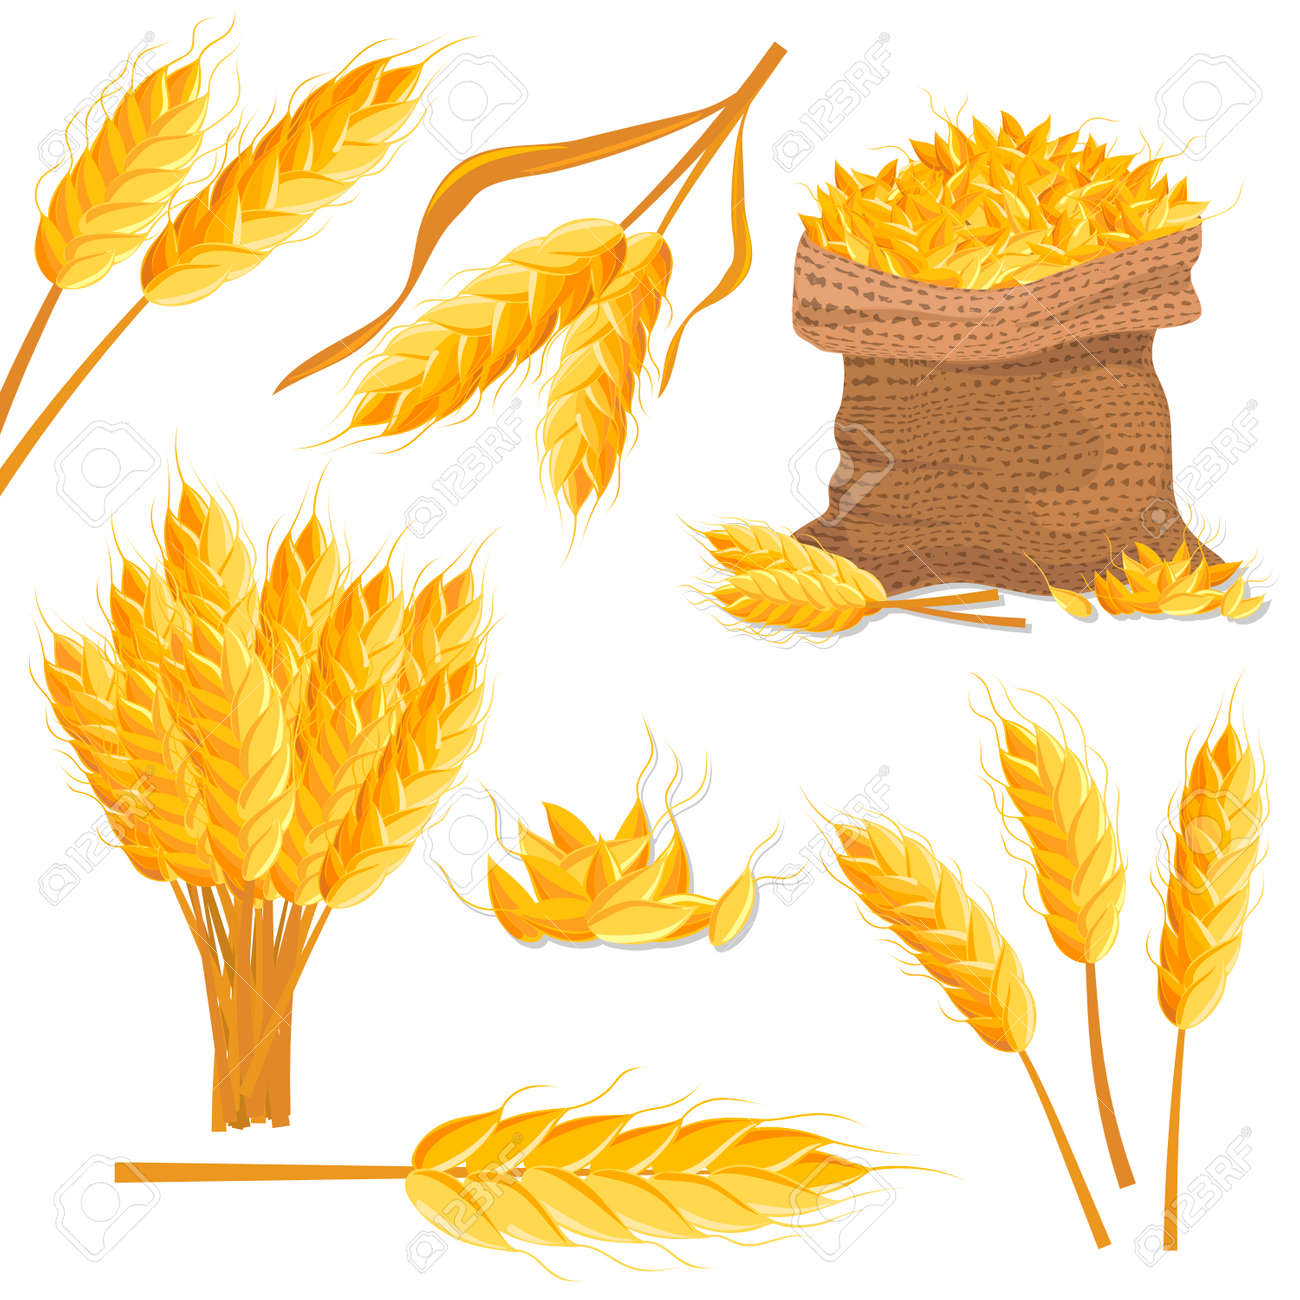 Cartoon wheat isolated set. Wheat bread ears, cereal crop harvest, grain culture vector illustration. Bakery design element, organic local farming, fresh healthy food, natural agricultural concept. - 78275548